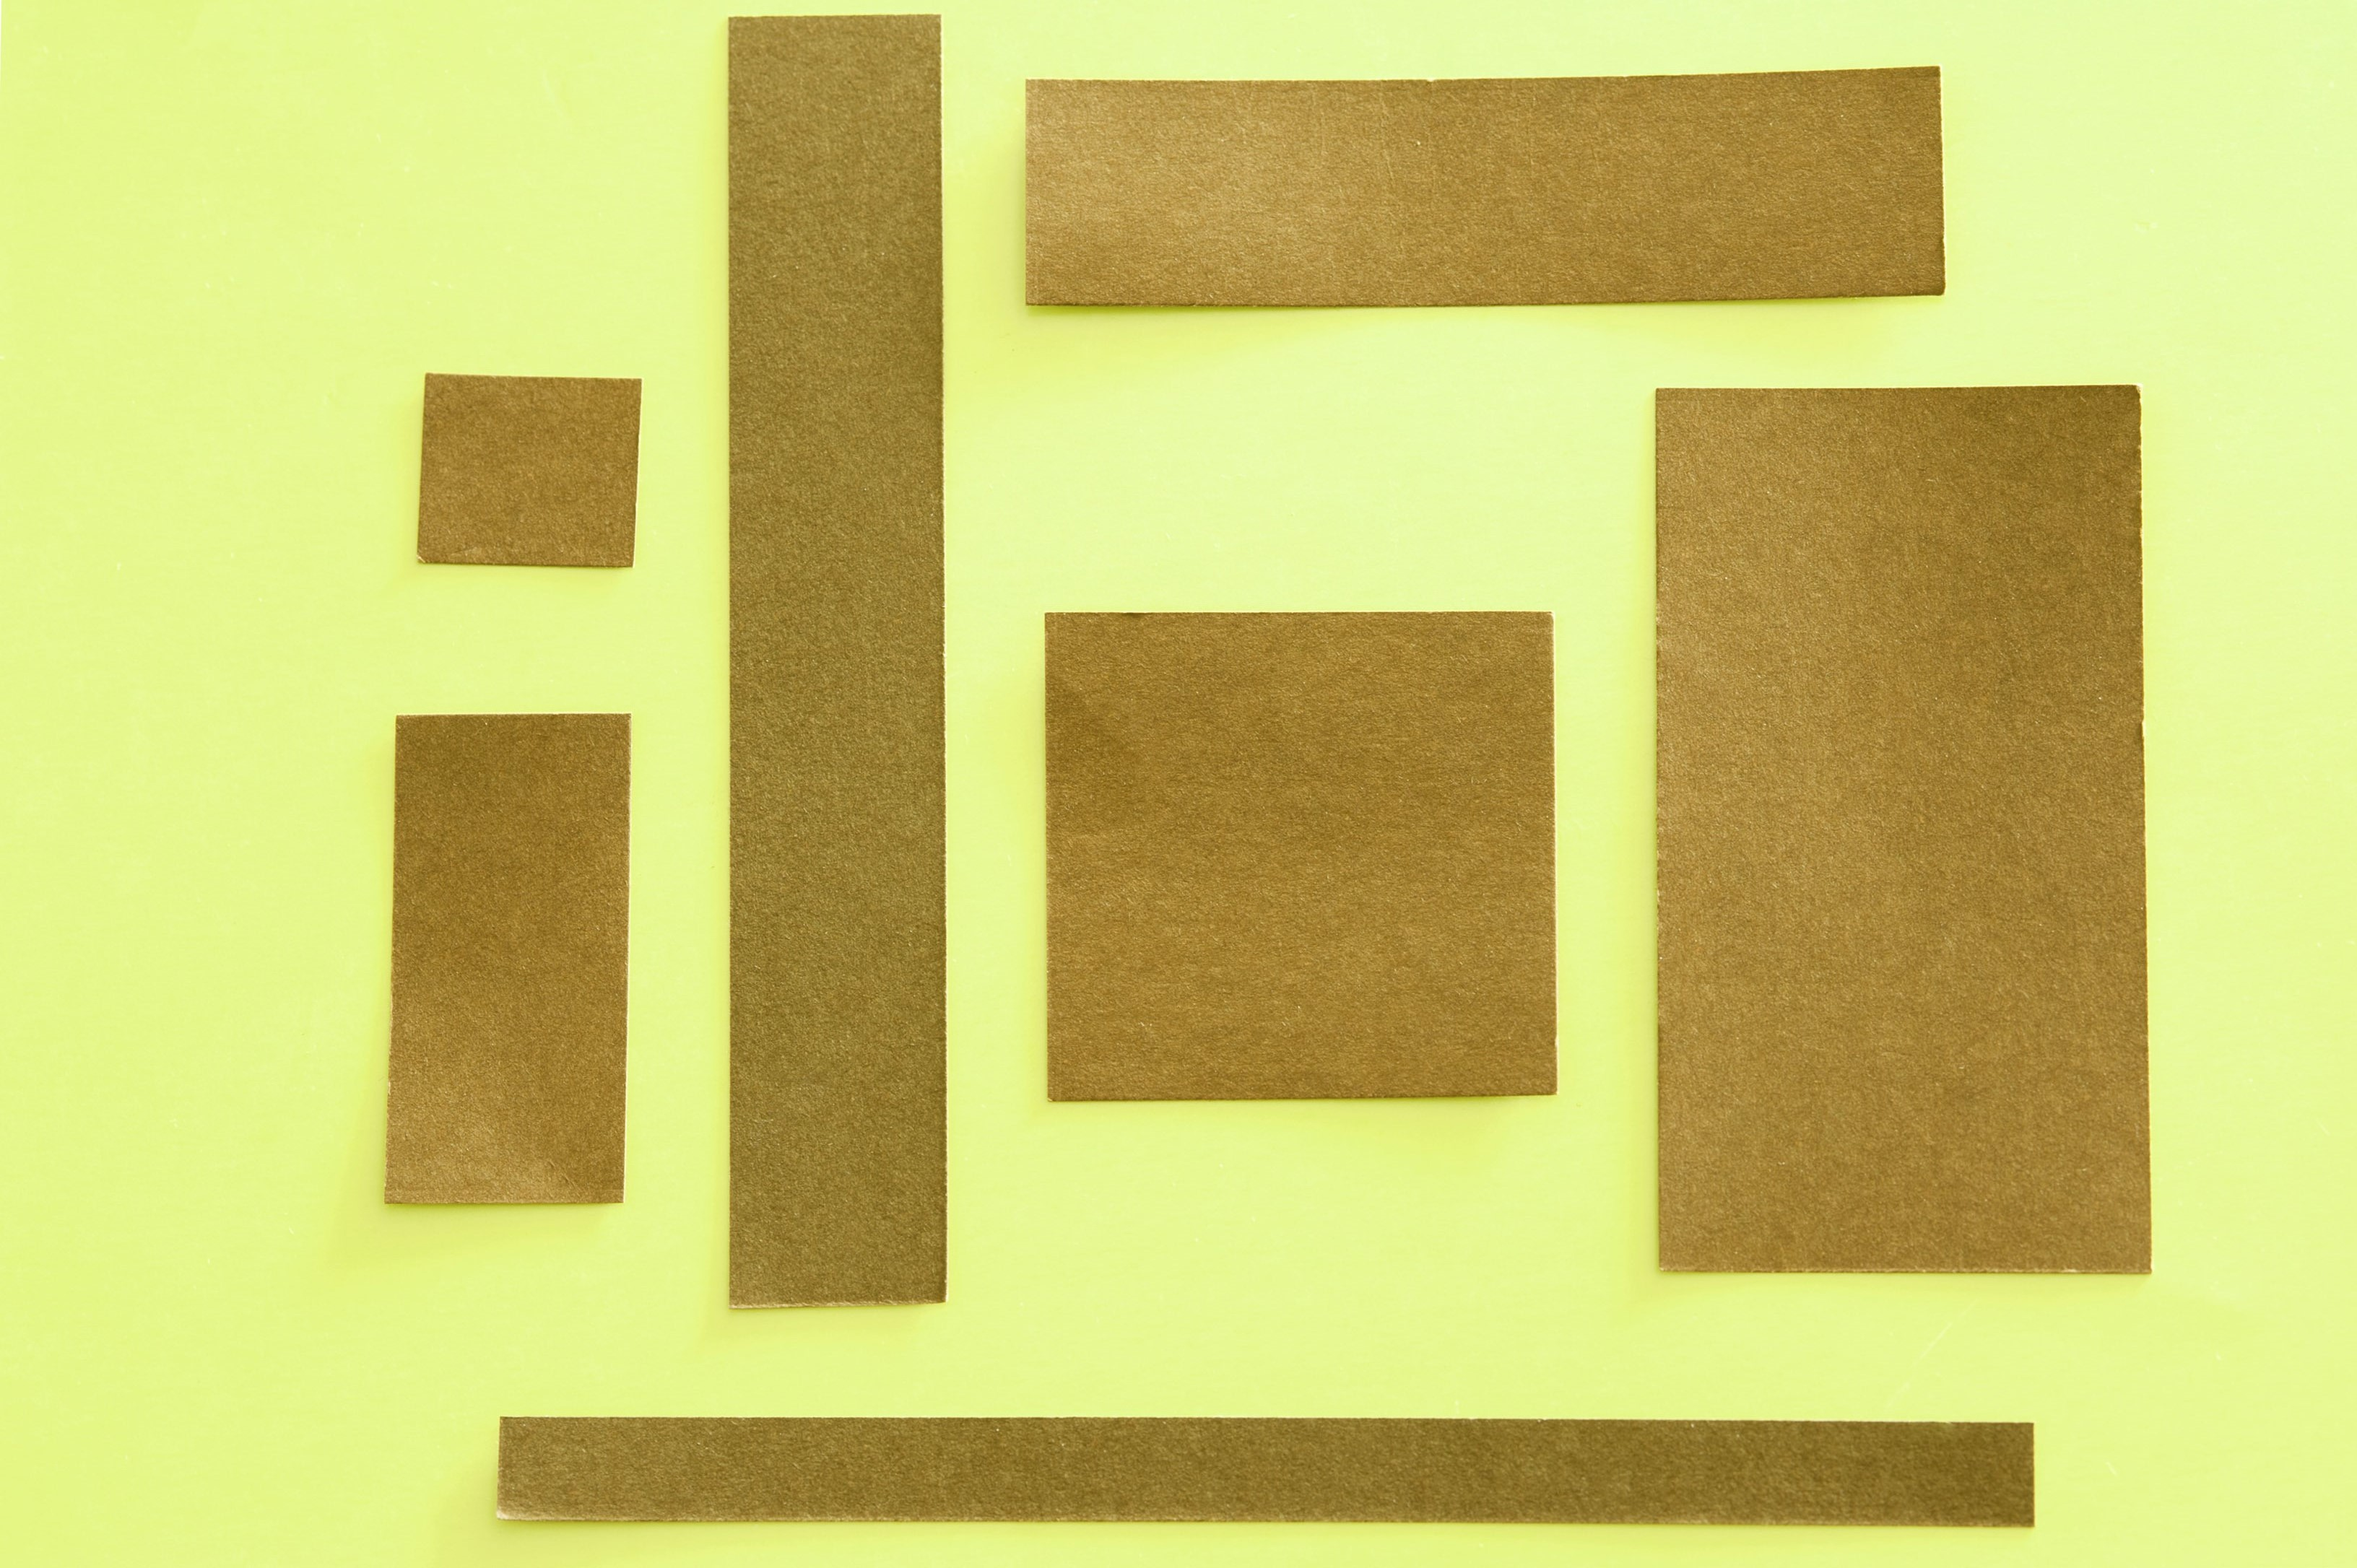 squares of craft paper on a yellow background with spaces for text